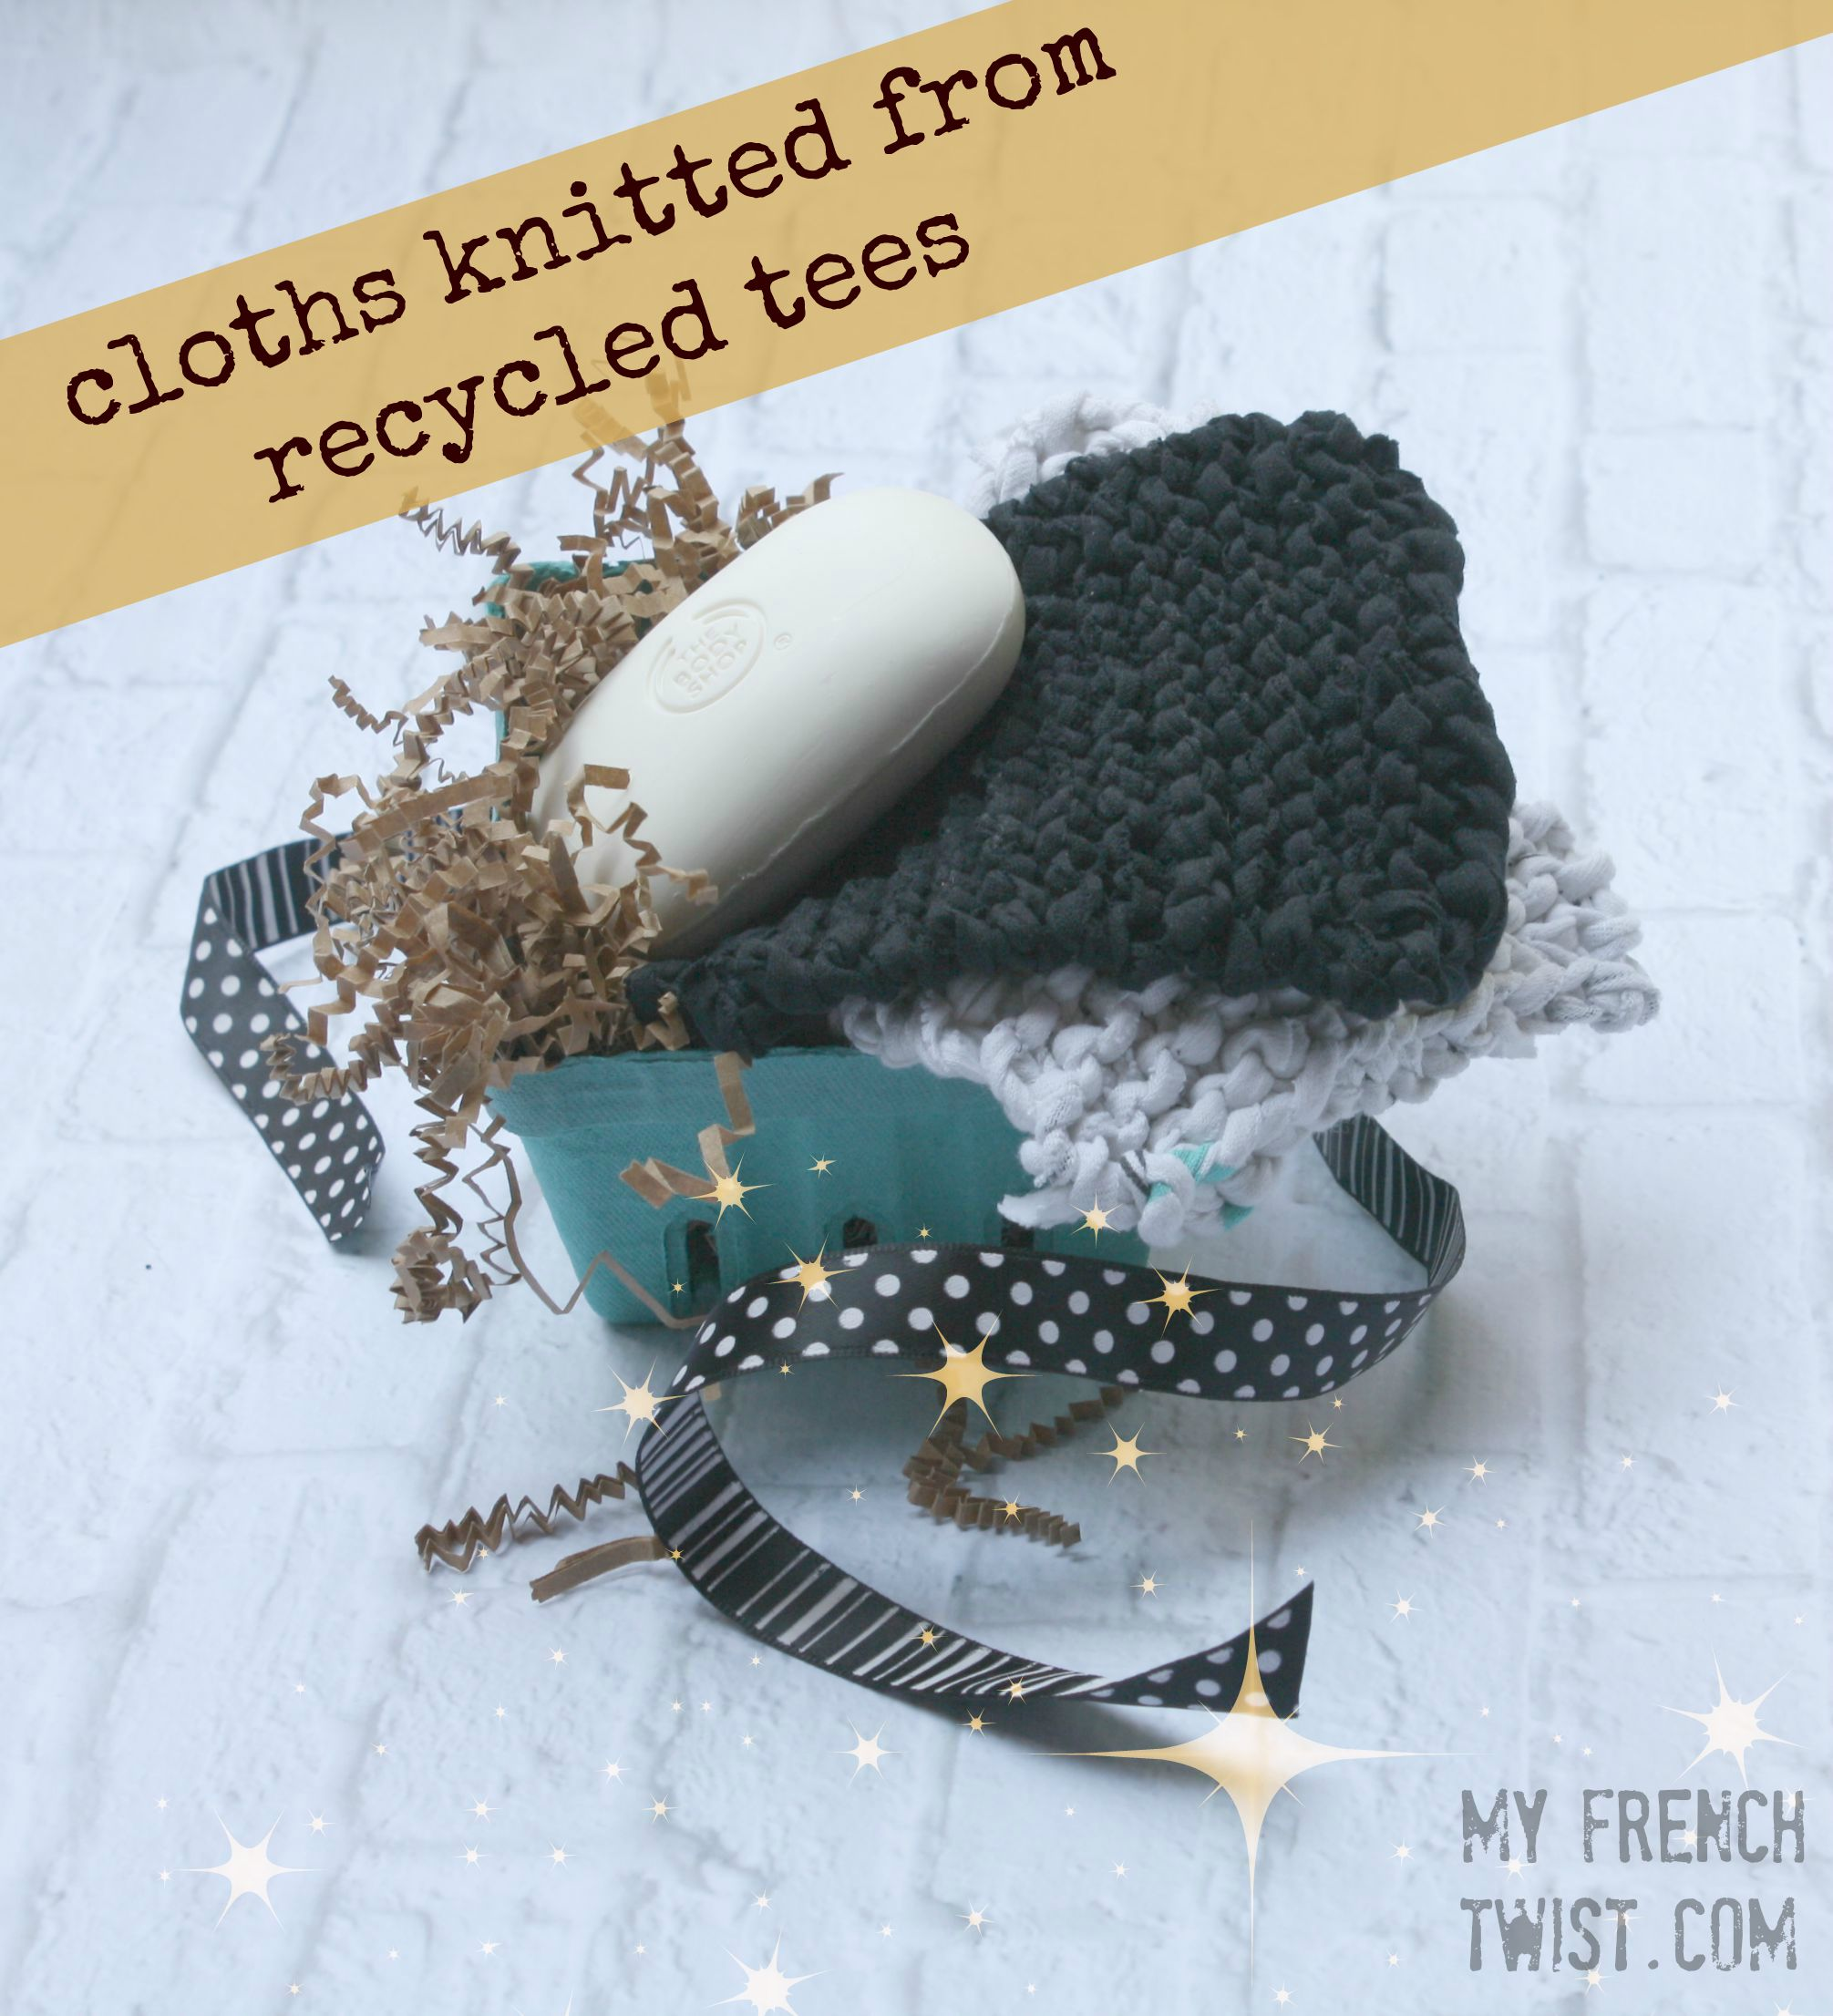 Knitting Holidays In France : Knitting learning and loving it with my french twist